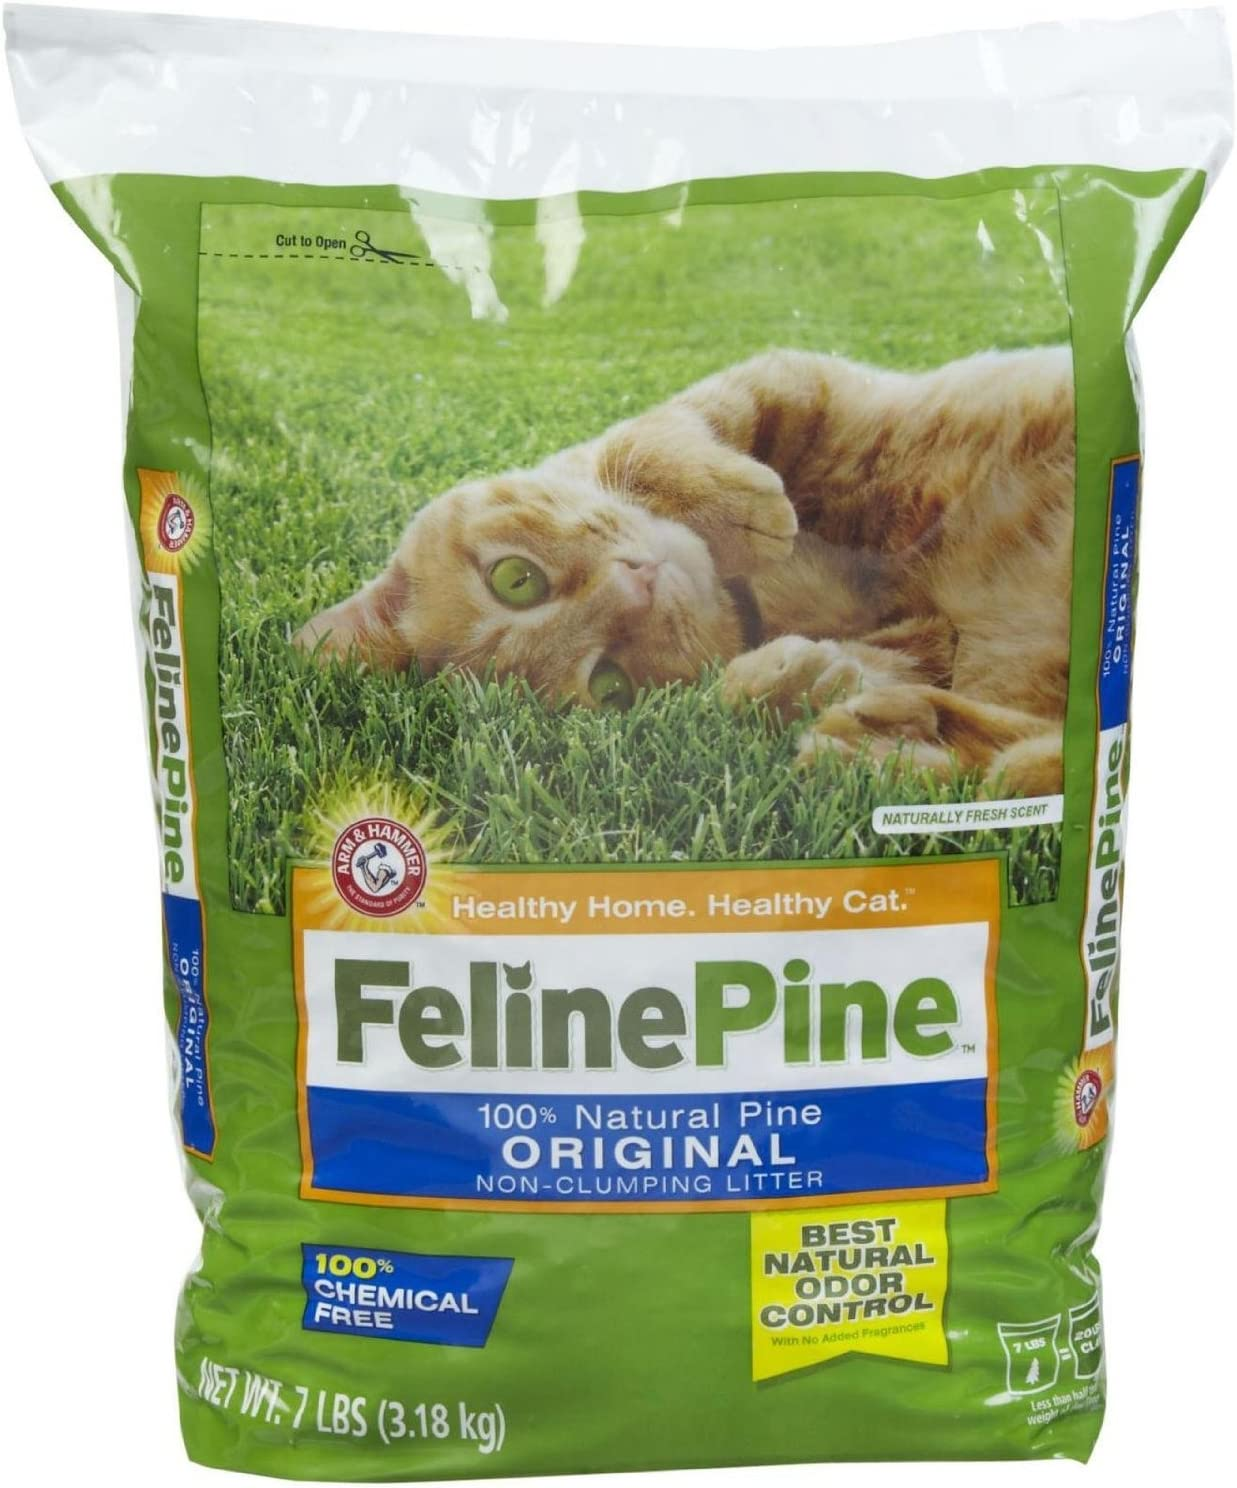 Feline Pine Original Cat Litter 7-Pound Pack Cheap super special price Daily bargain sale of Bags 2